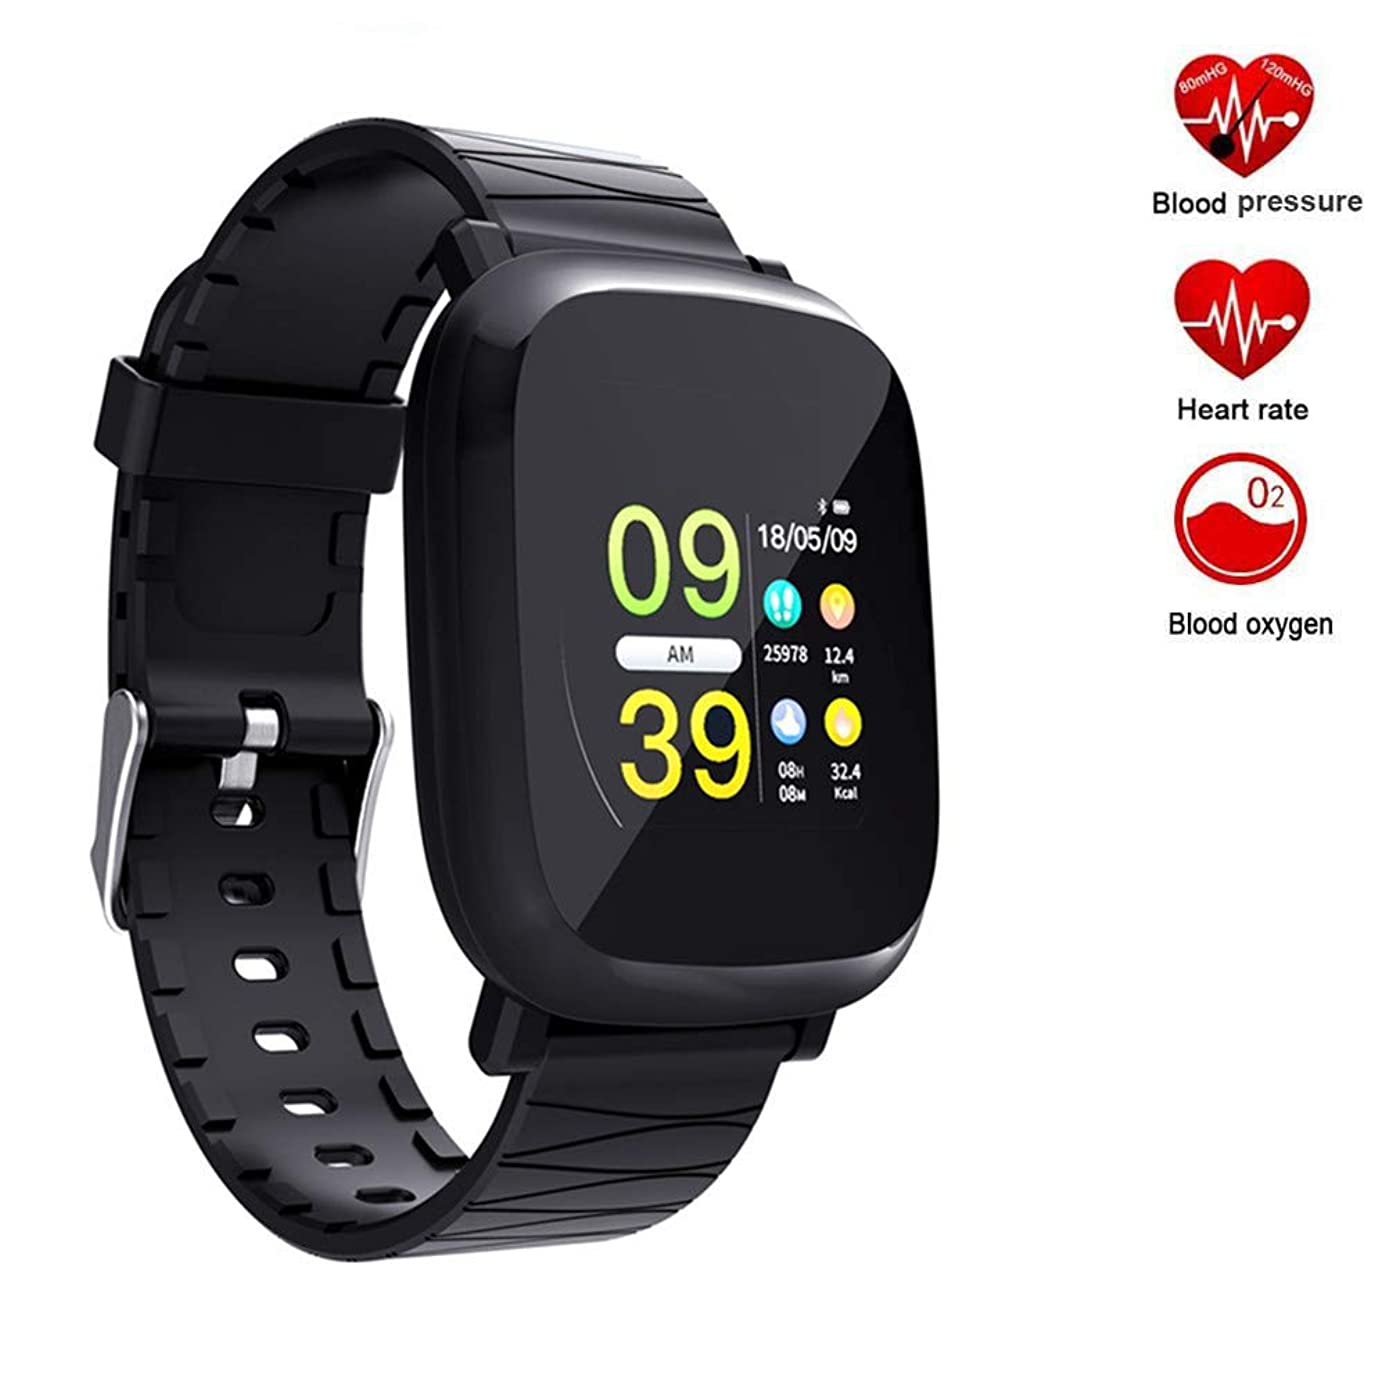 TechCode Bluetooth Smartwatch, Activity Sports Watch with Heart Rate Monitor Step Calorie Distance Tracker IP67 Waterproof Watch Wristband Compatible with iPhone Xs Max/X/8/7,Galaxy S9/Note9/Note8